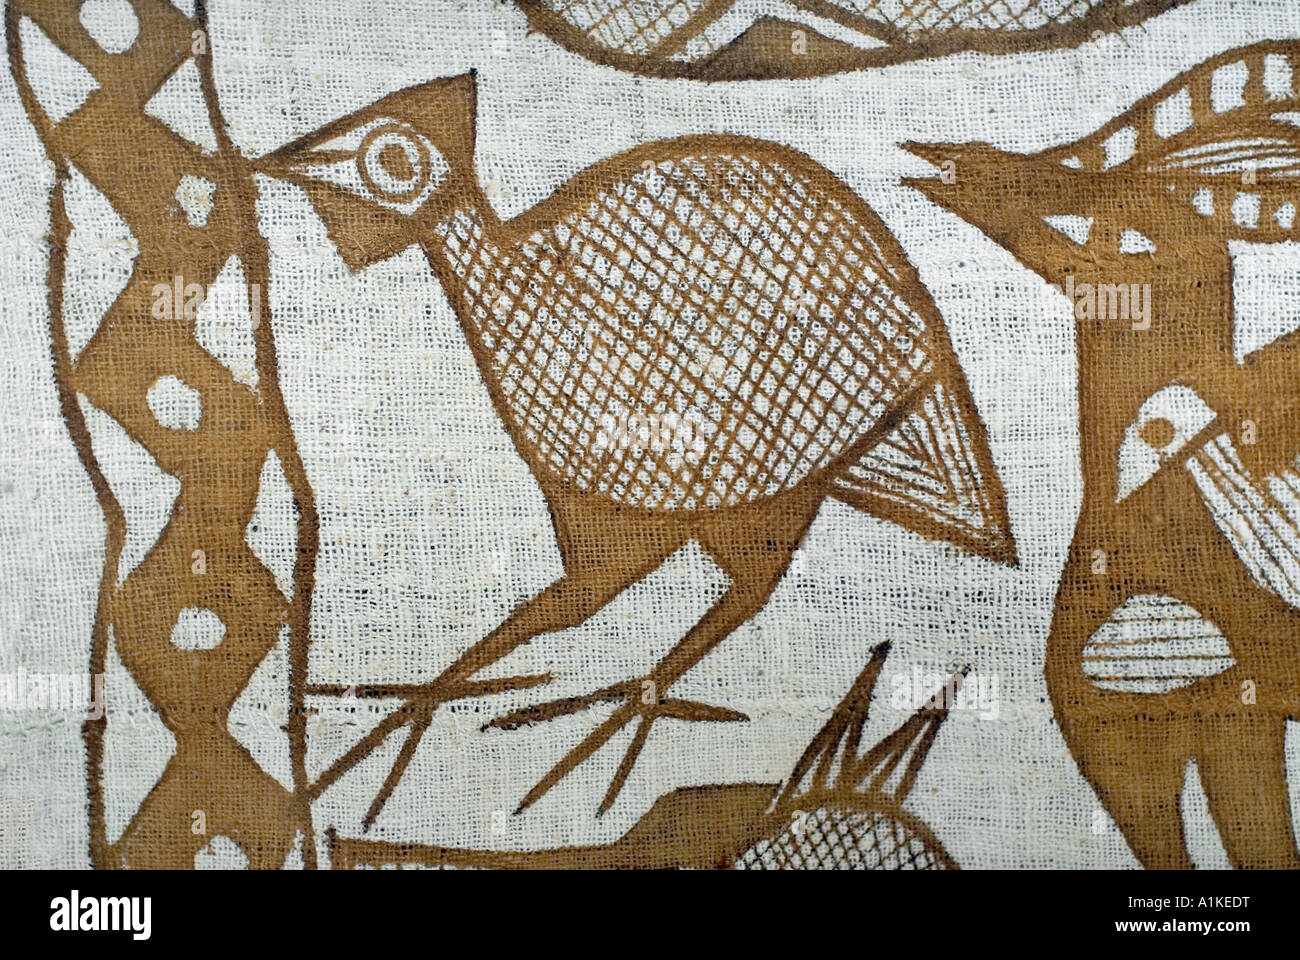 Detail of a painted cotton textile from the Senoufo people of the Korhogo region of the Ivory Coast West Africa - Stock Image